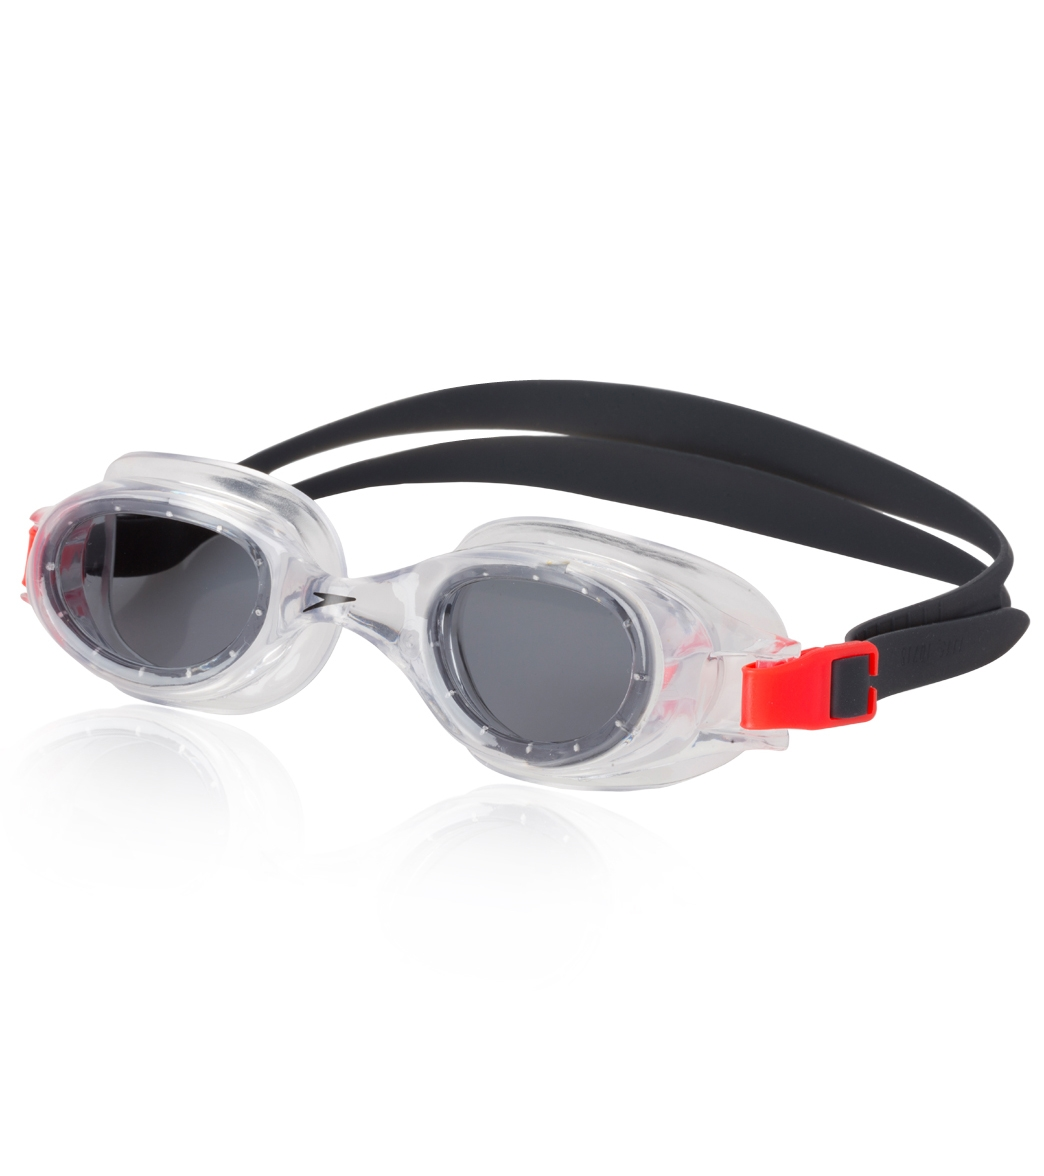 Speedo Hydrospex Anti Fog Swimming Goggles